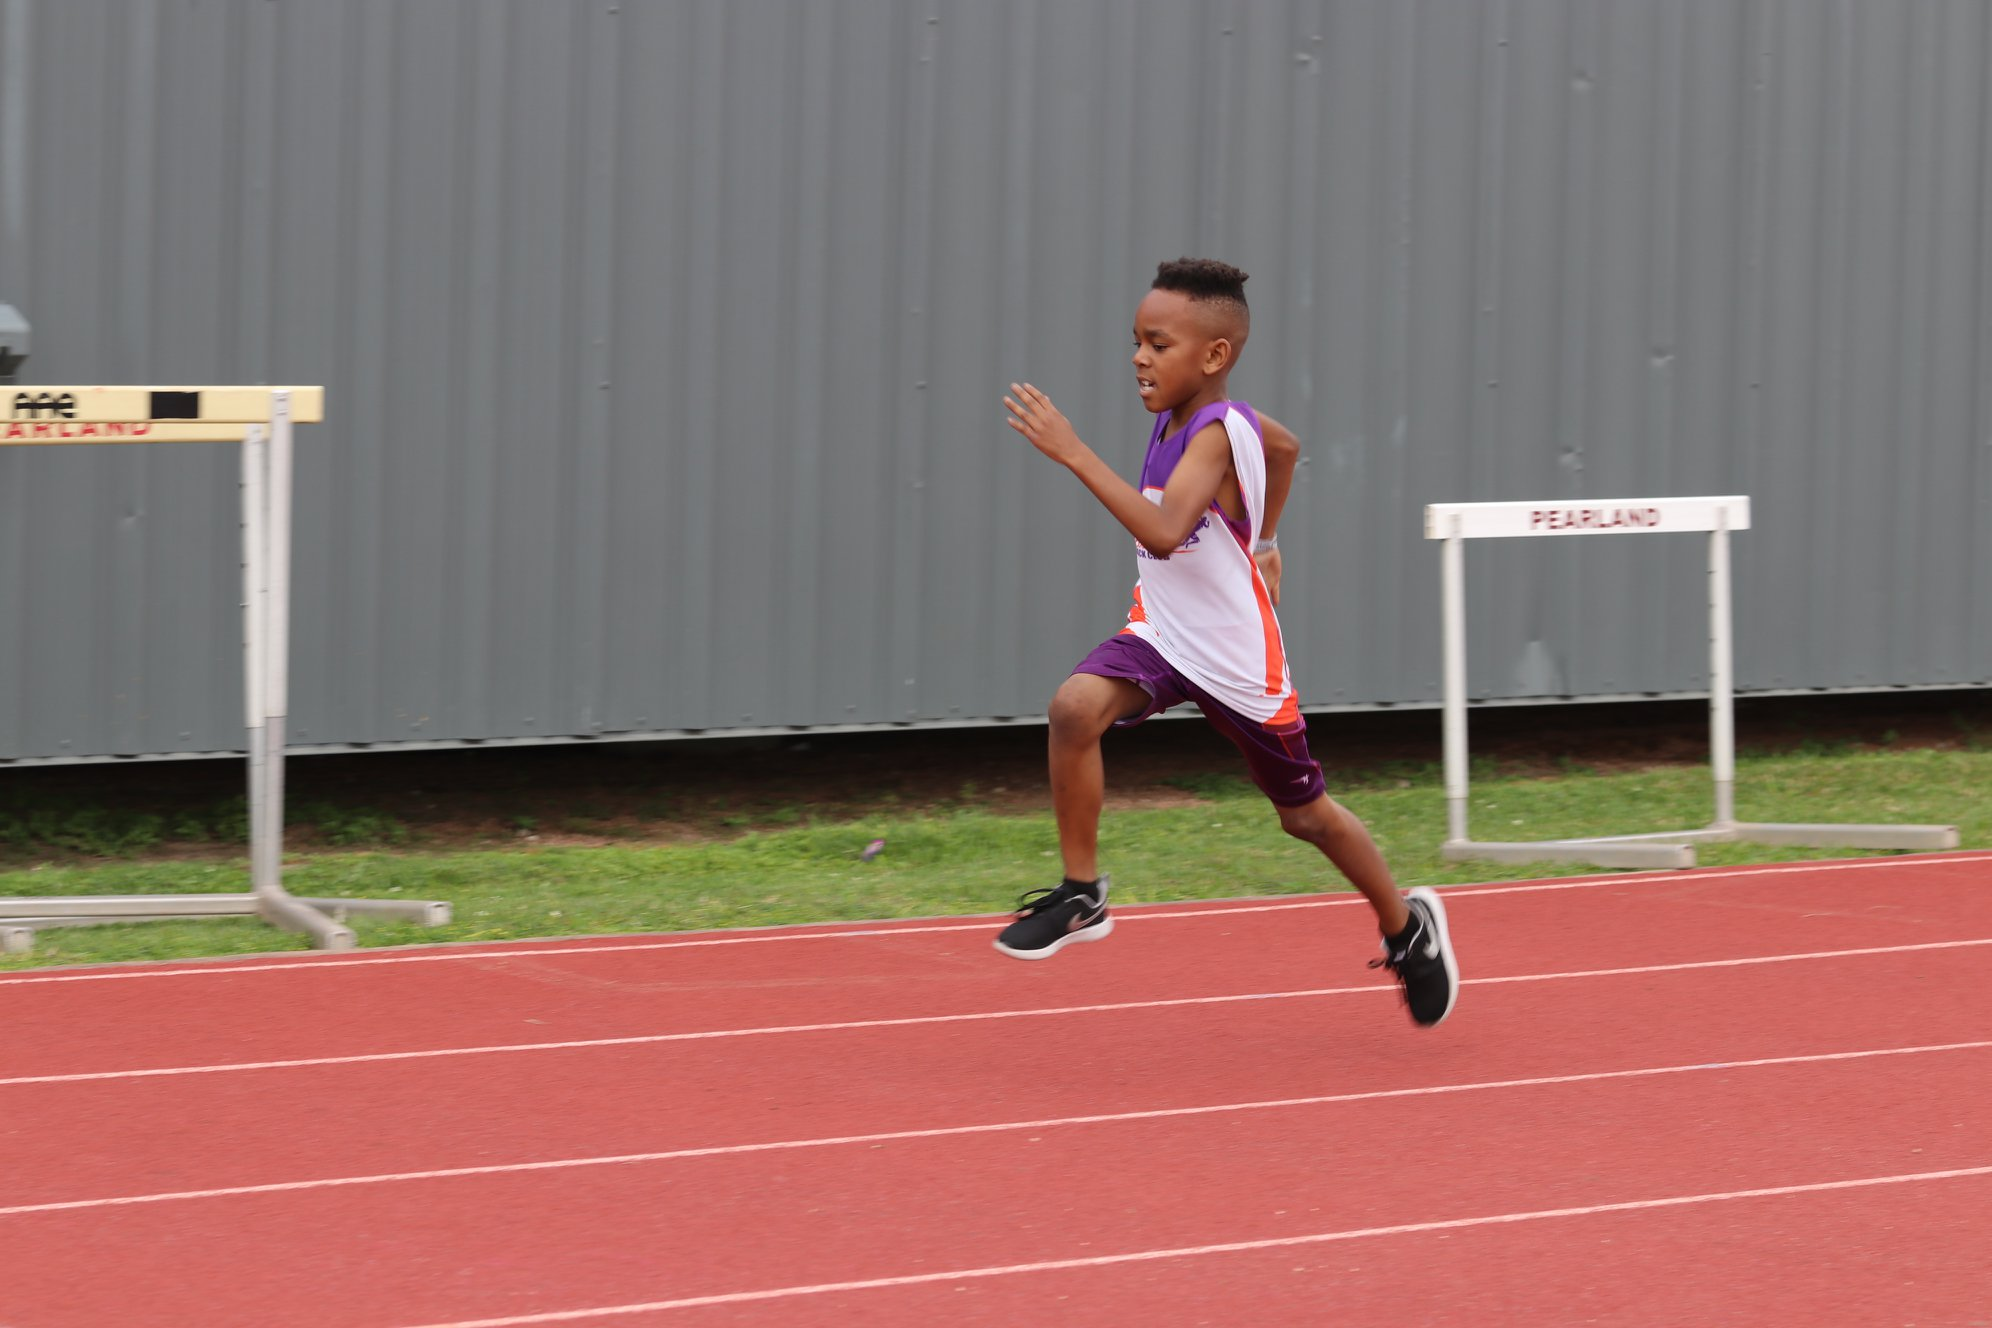 Kevin running the 400